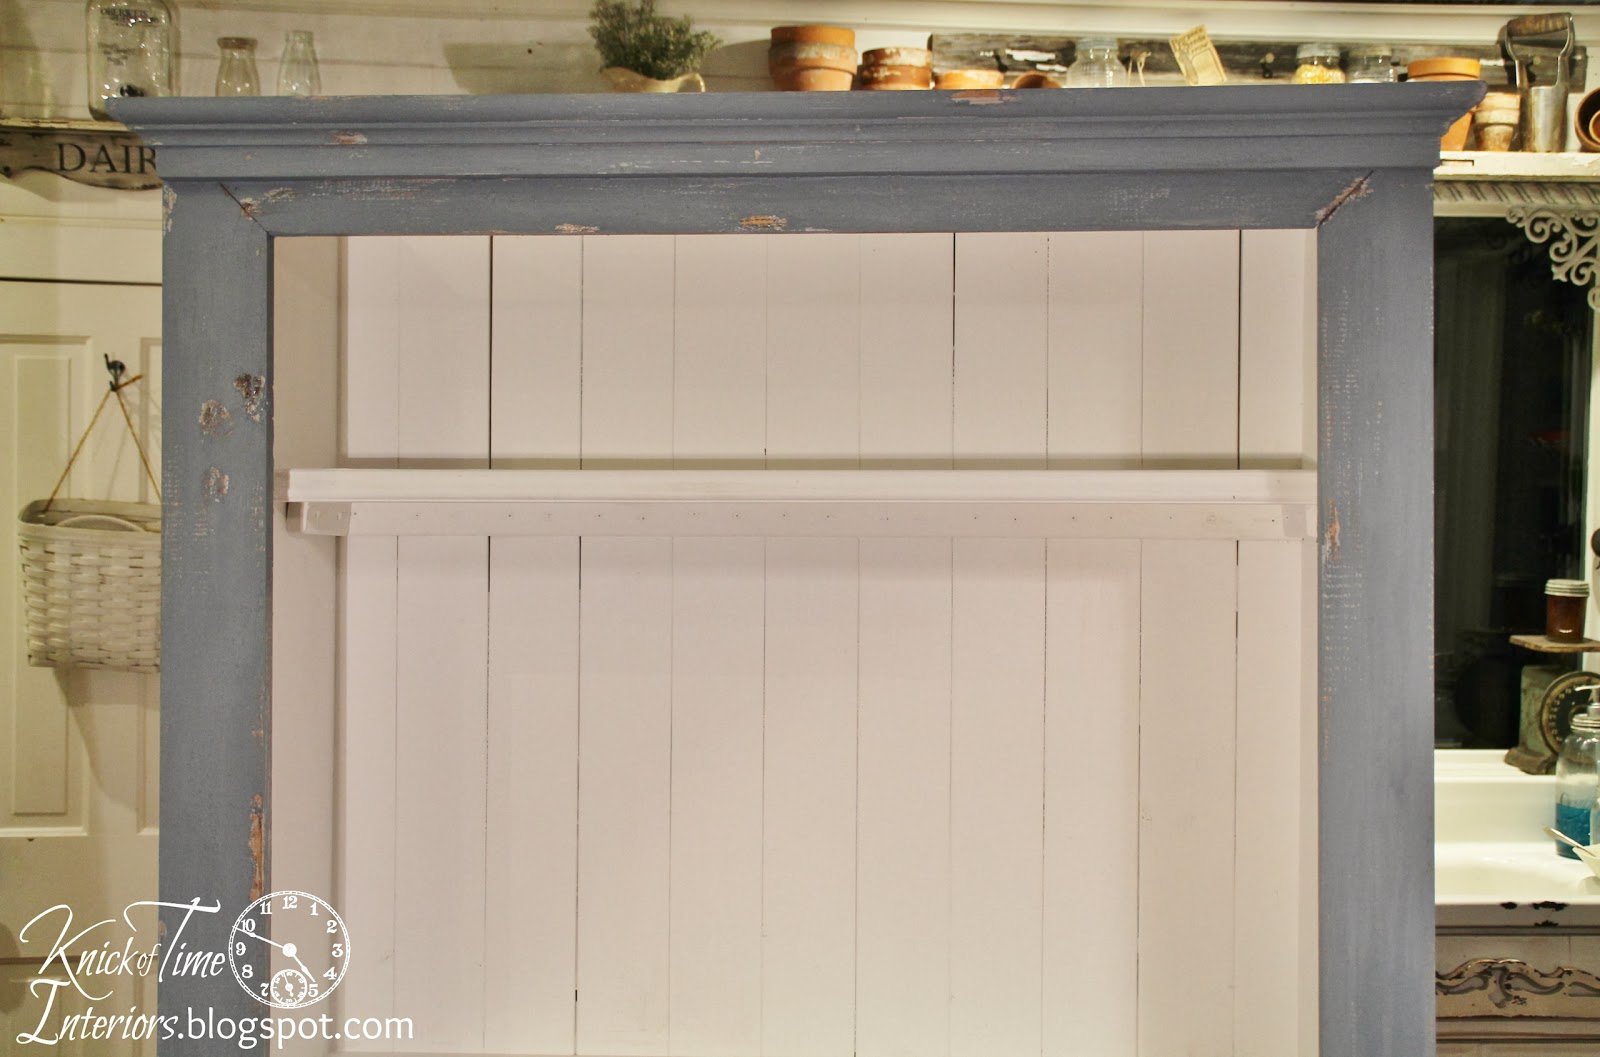 DIY Cupboard Cabinet via Knick of Time